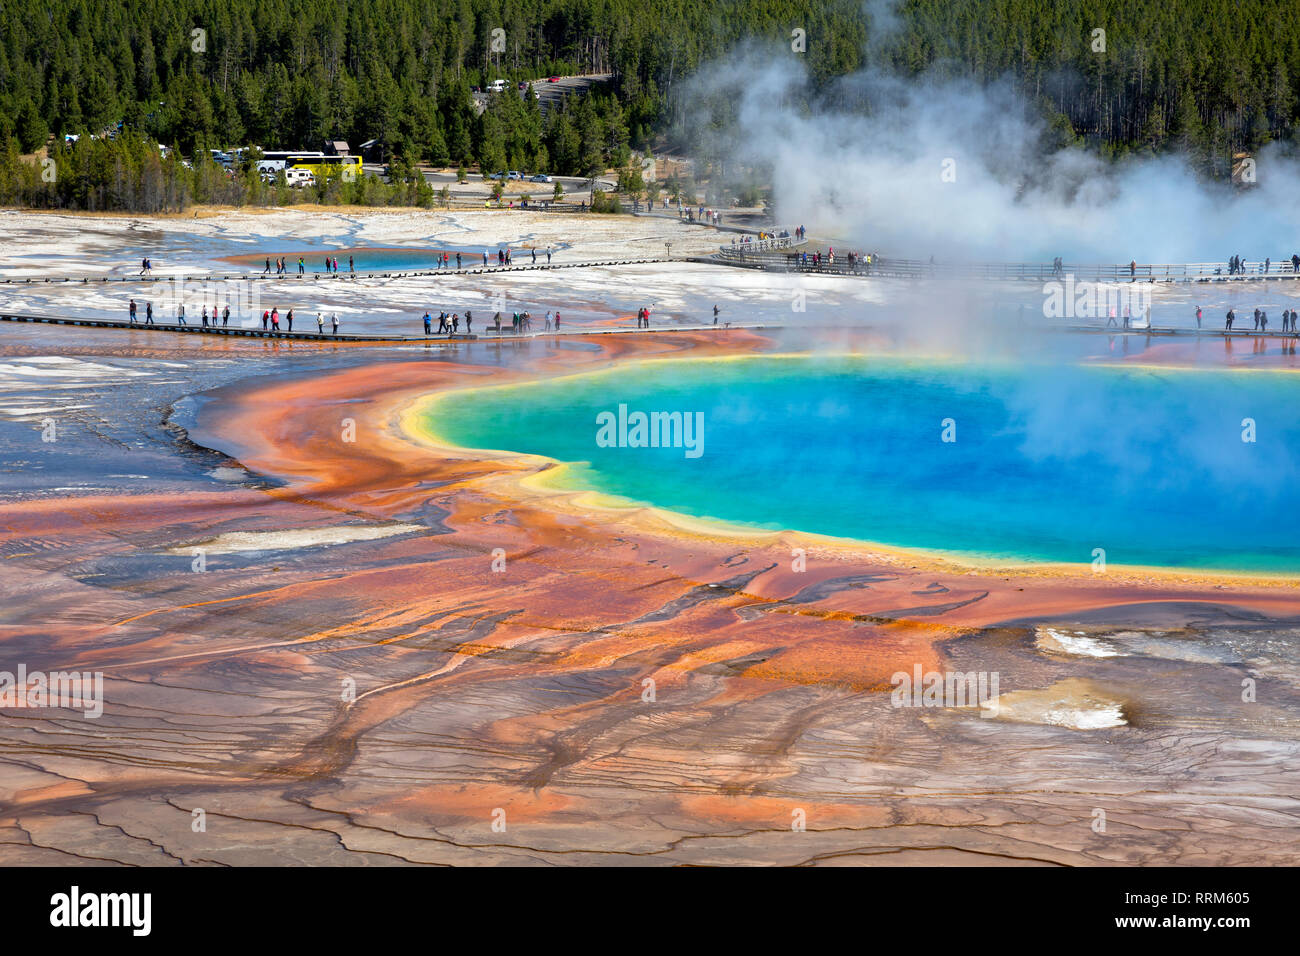 WY03856-00...WYOMING - The colorful Grand Prismatic Spring in the Midway Geyser Basin of Yellowstone National Park. Stock Photo